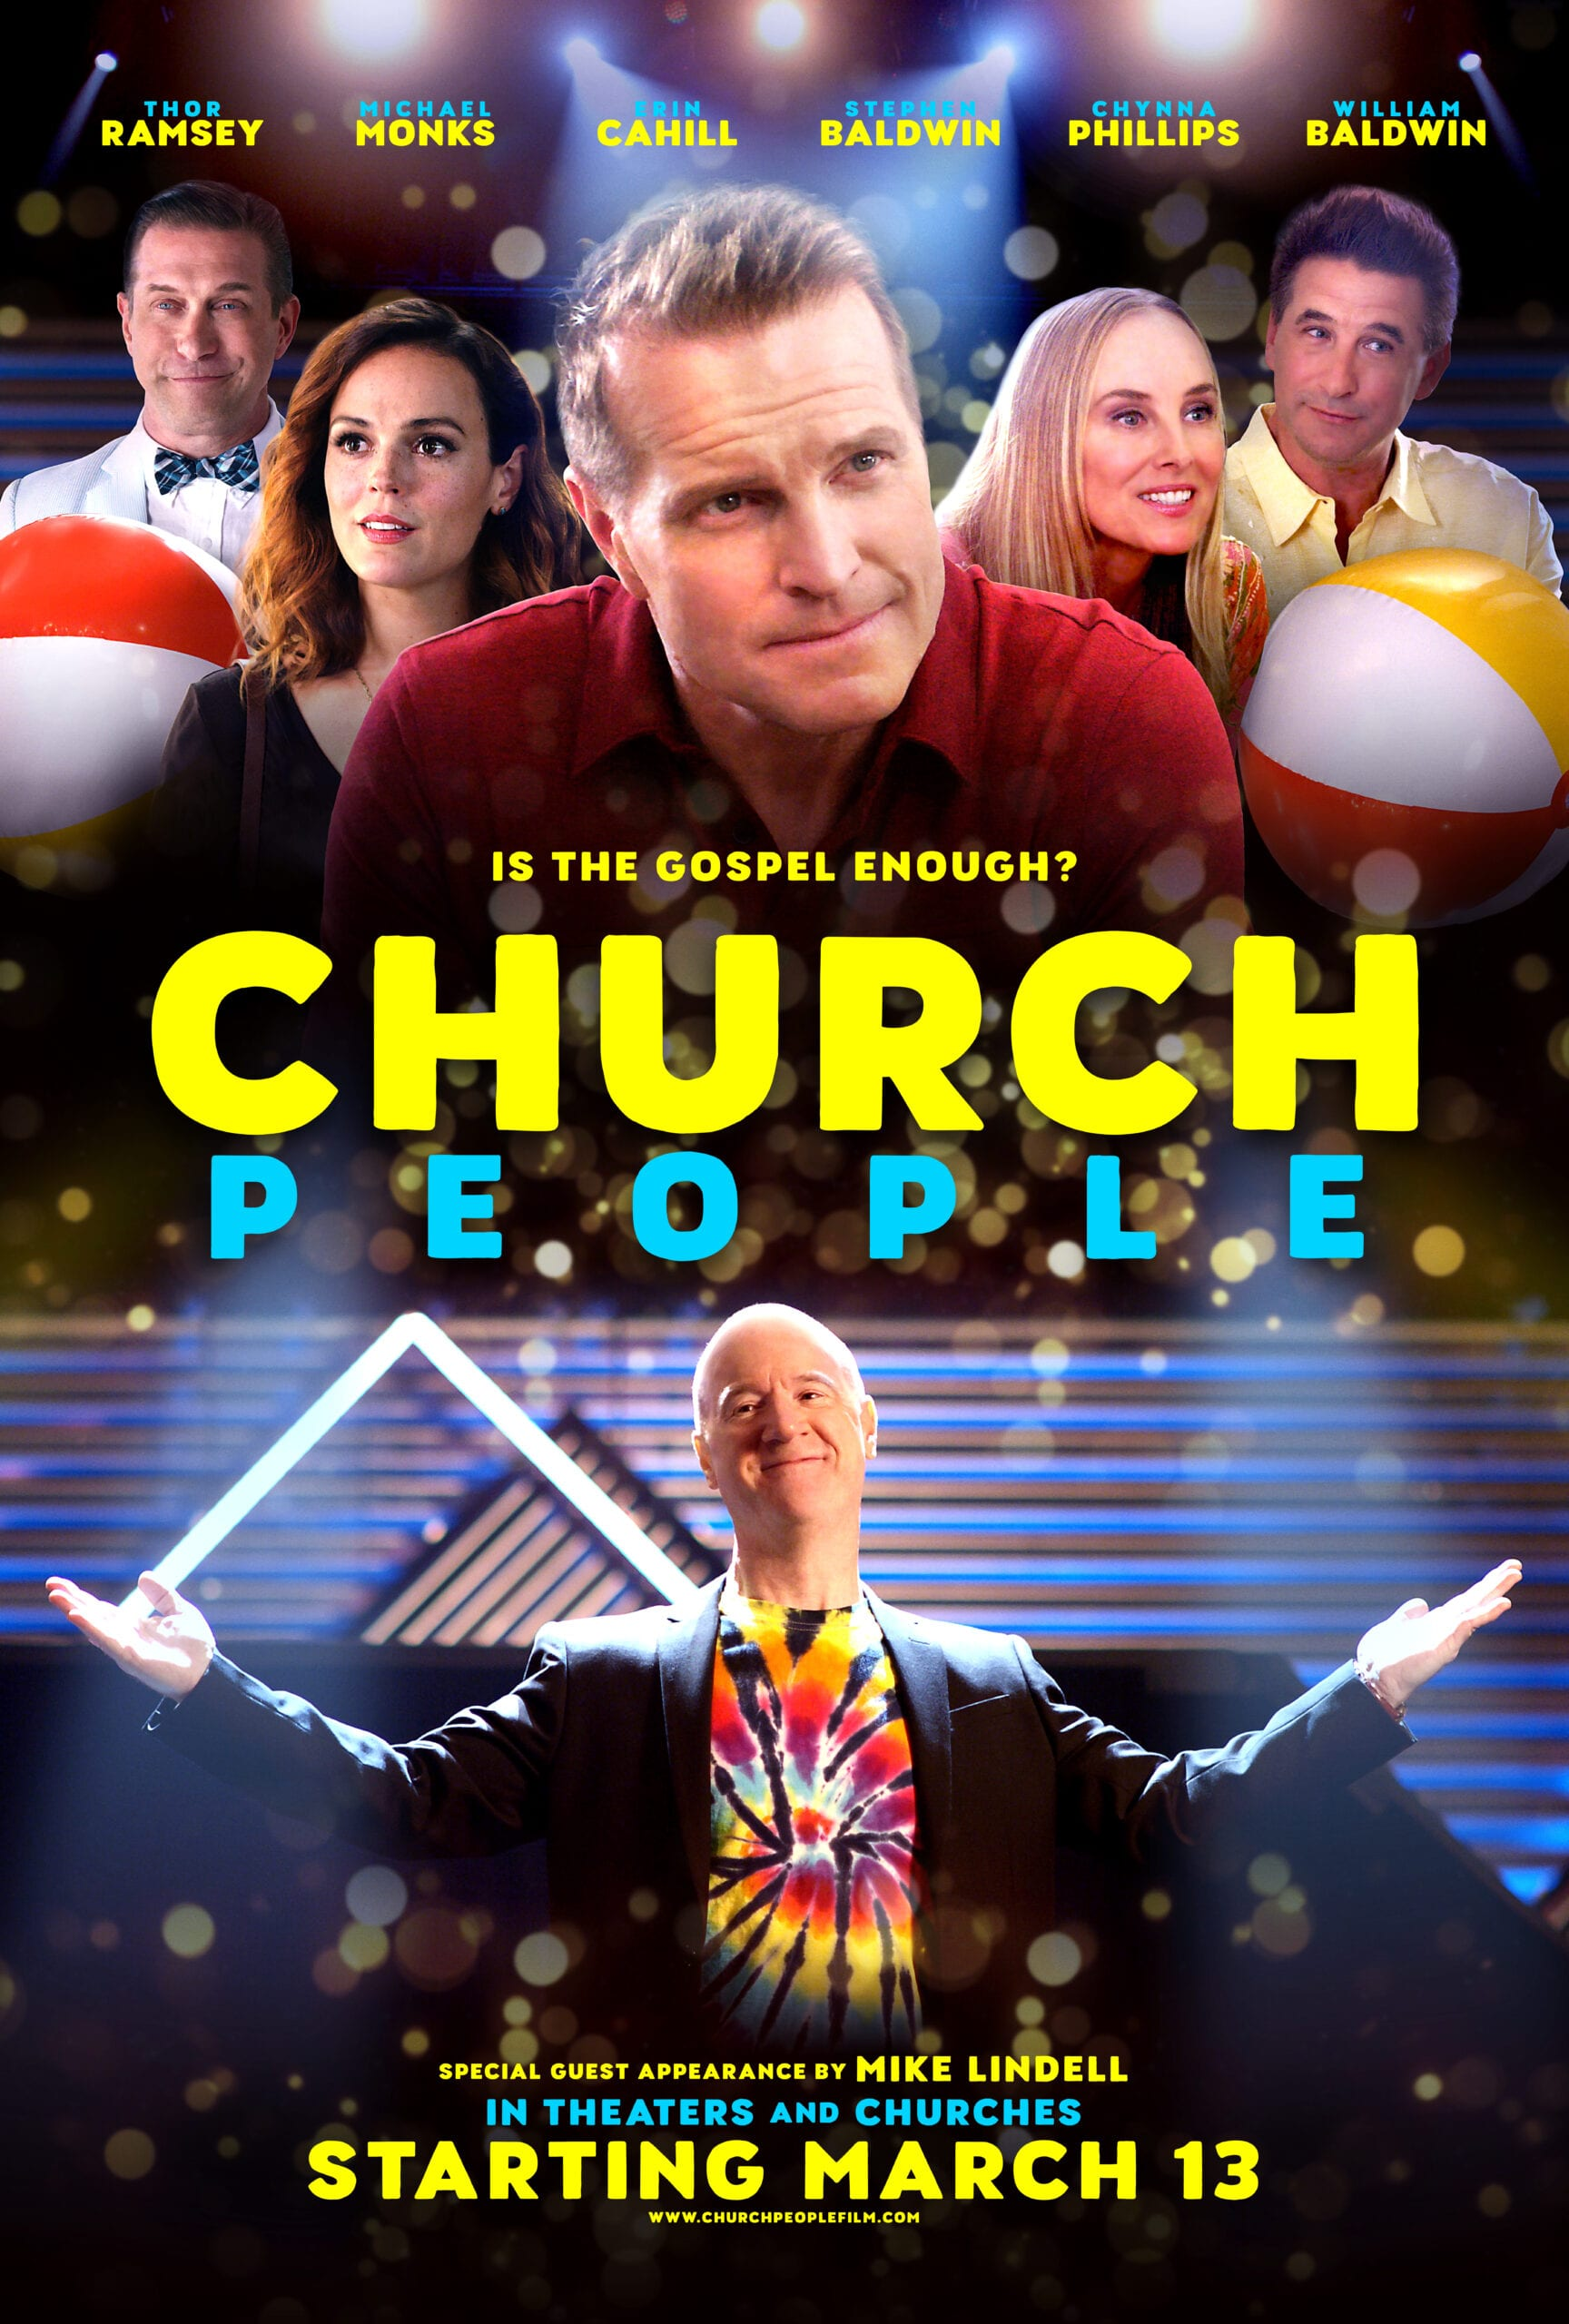 Church People movie review and giveaway ends 3-16